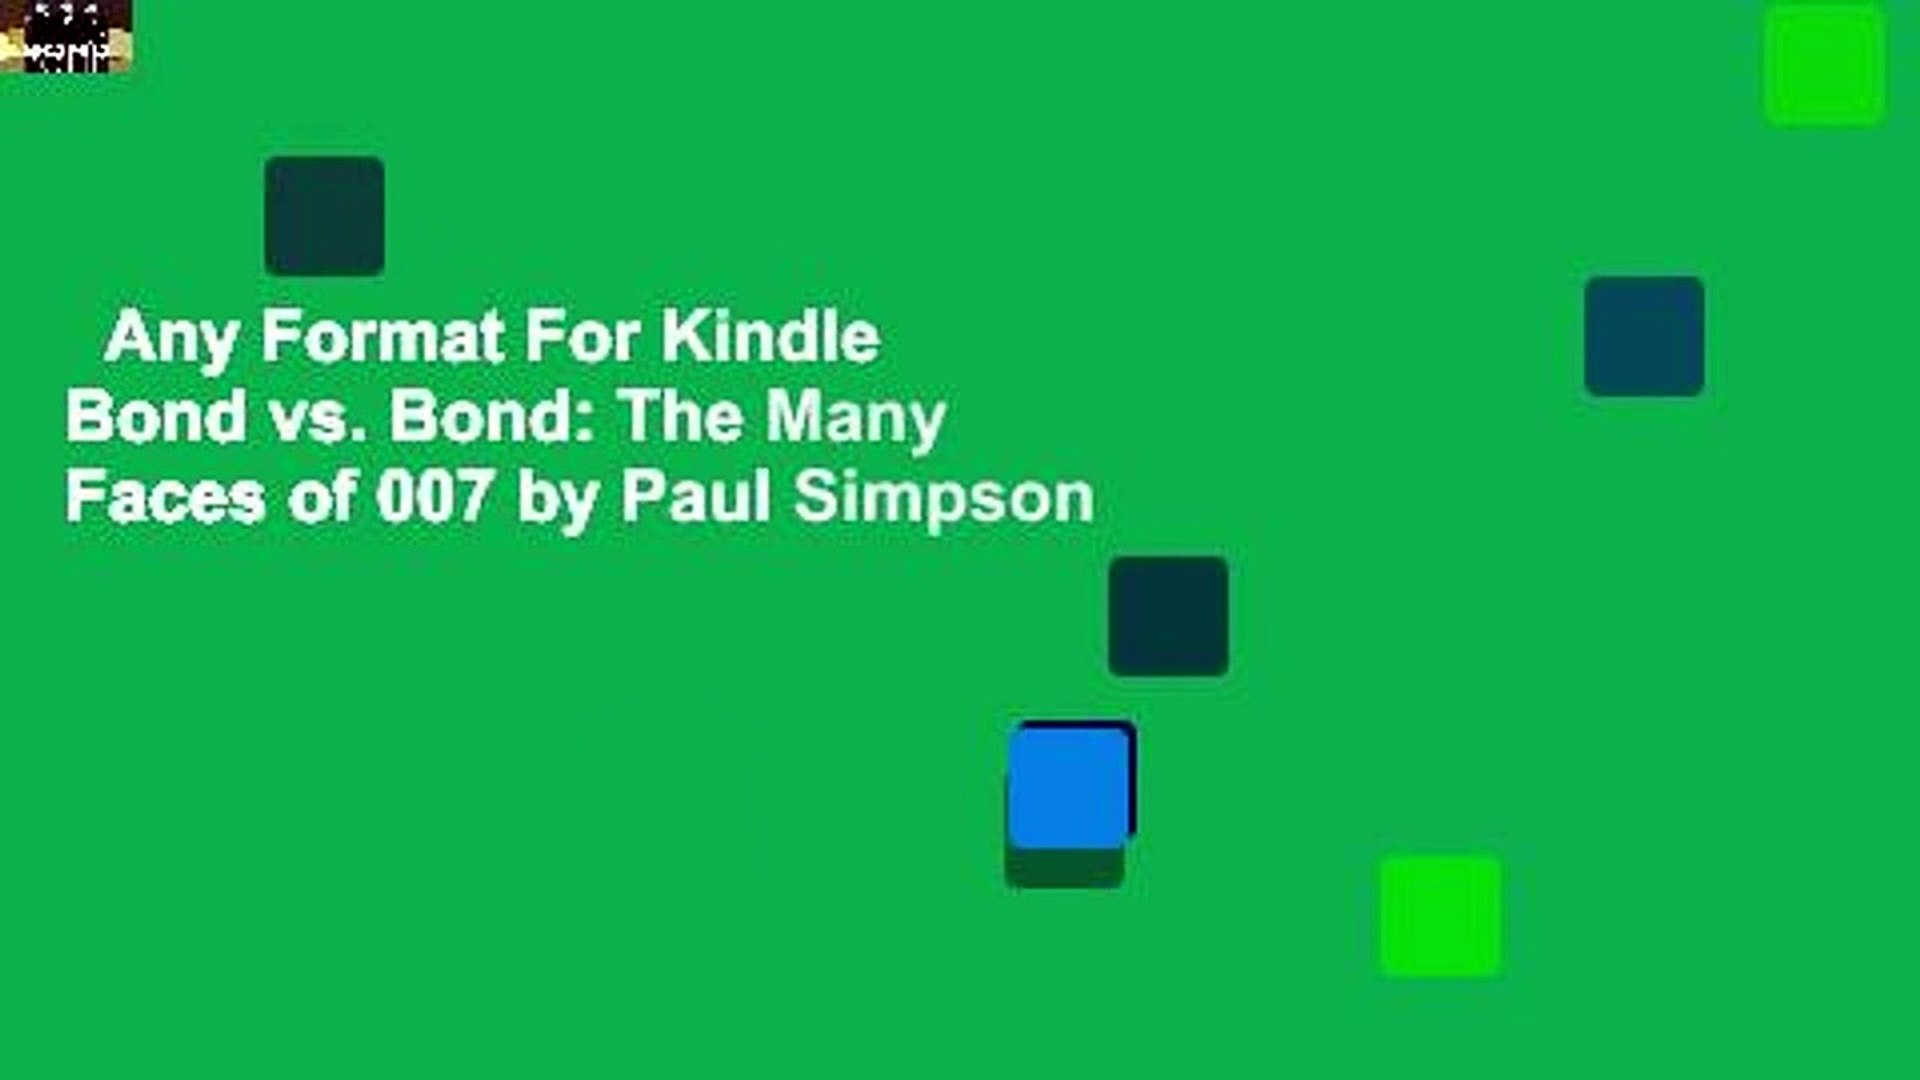 Any Format For Kindle  Bond vs. Bond: The Many Faces of 007 by Paul Simpson